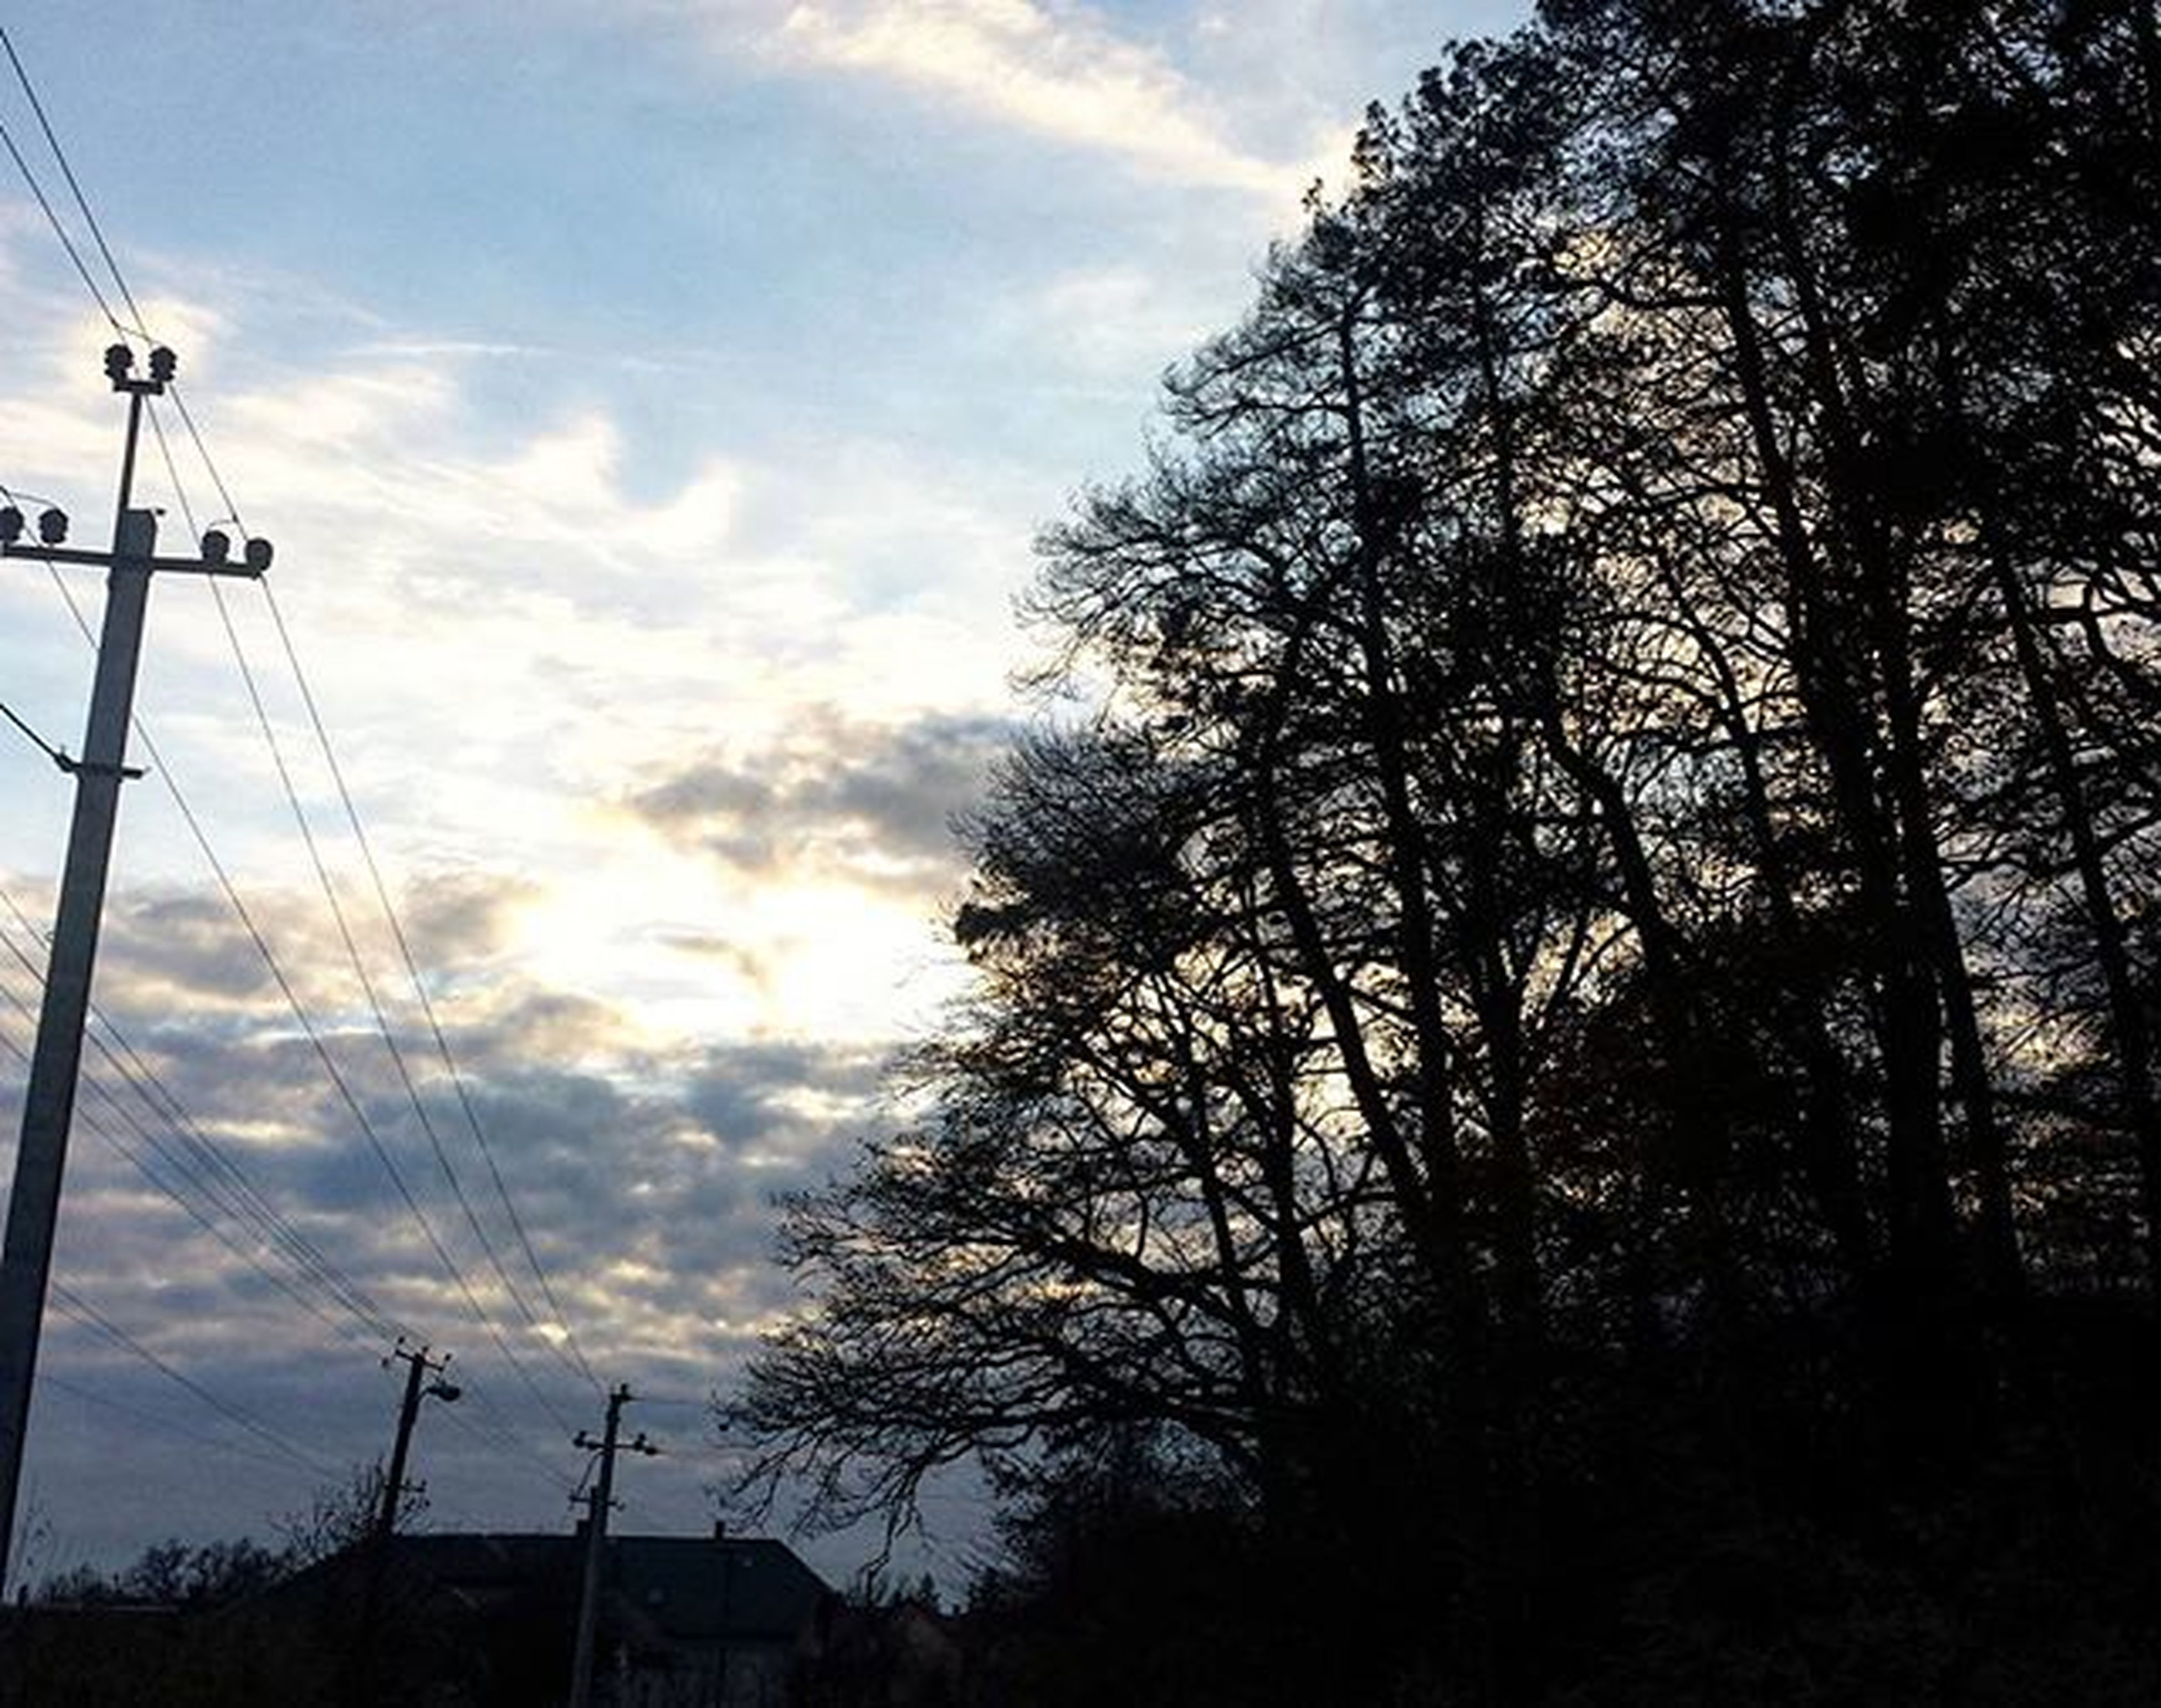 tree, silhouette, sky, power line, electricity pylon, low angle view, sunset, electricity, cloud - sky, street light, nature, cable, tranquility, dusk, connection, power supply, cloud, beauty in nature, cloudy, outdoors